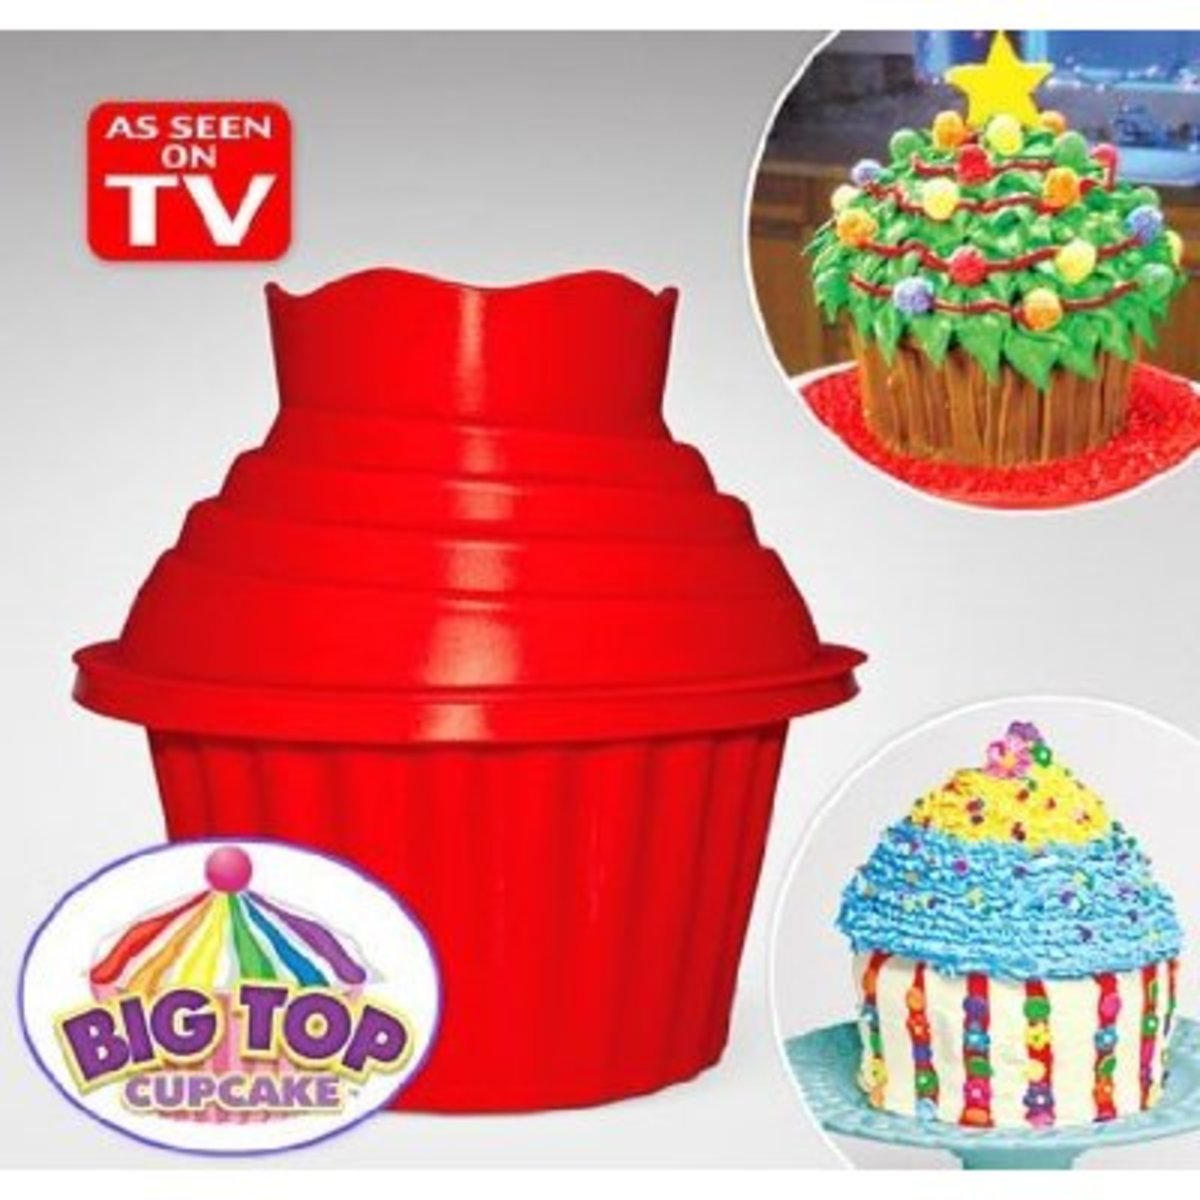 The Big Top Giant Cupcake Pan!